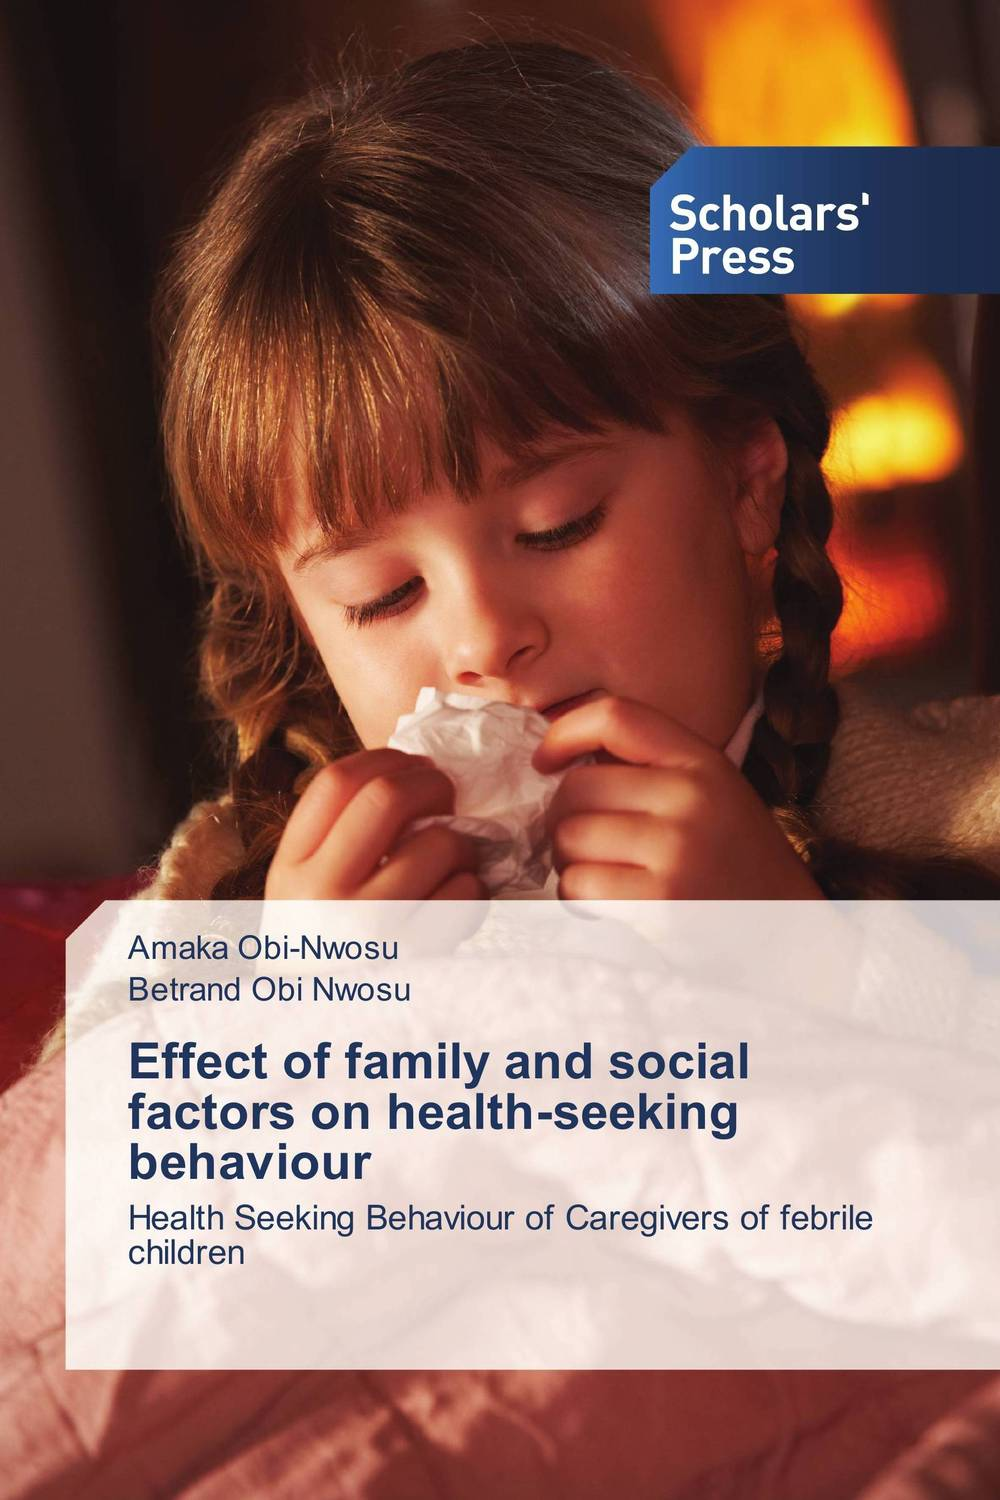 Effect of family and social factors on health-seeking behaviour tobias olweny and kenedy omondi the effect of macro economic factors on stock return volatility at nse